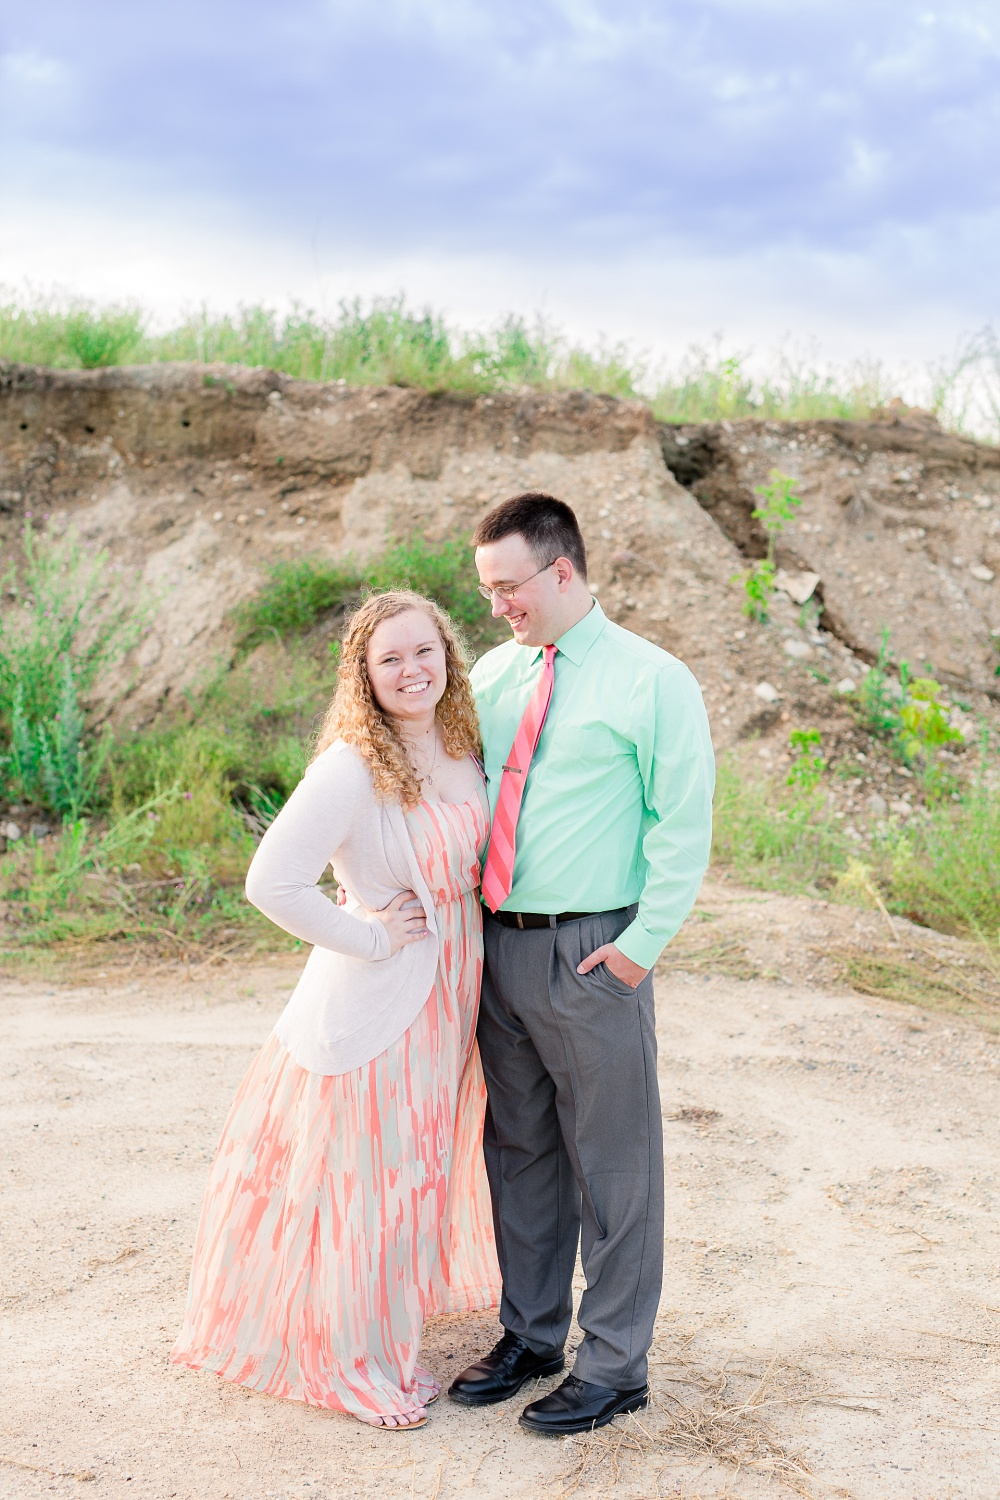 Minnesota Country Styled Engagement Pictures by Amber Langerud Photography | Fiance looking at his bride to be